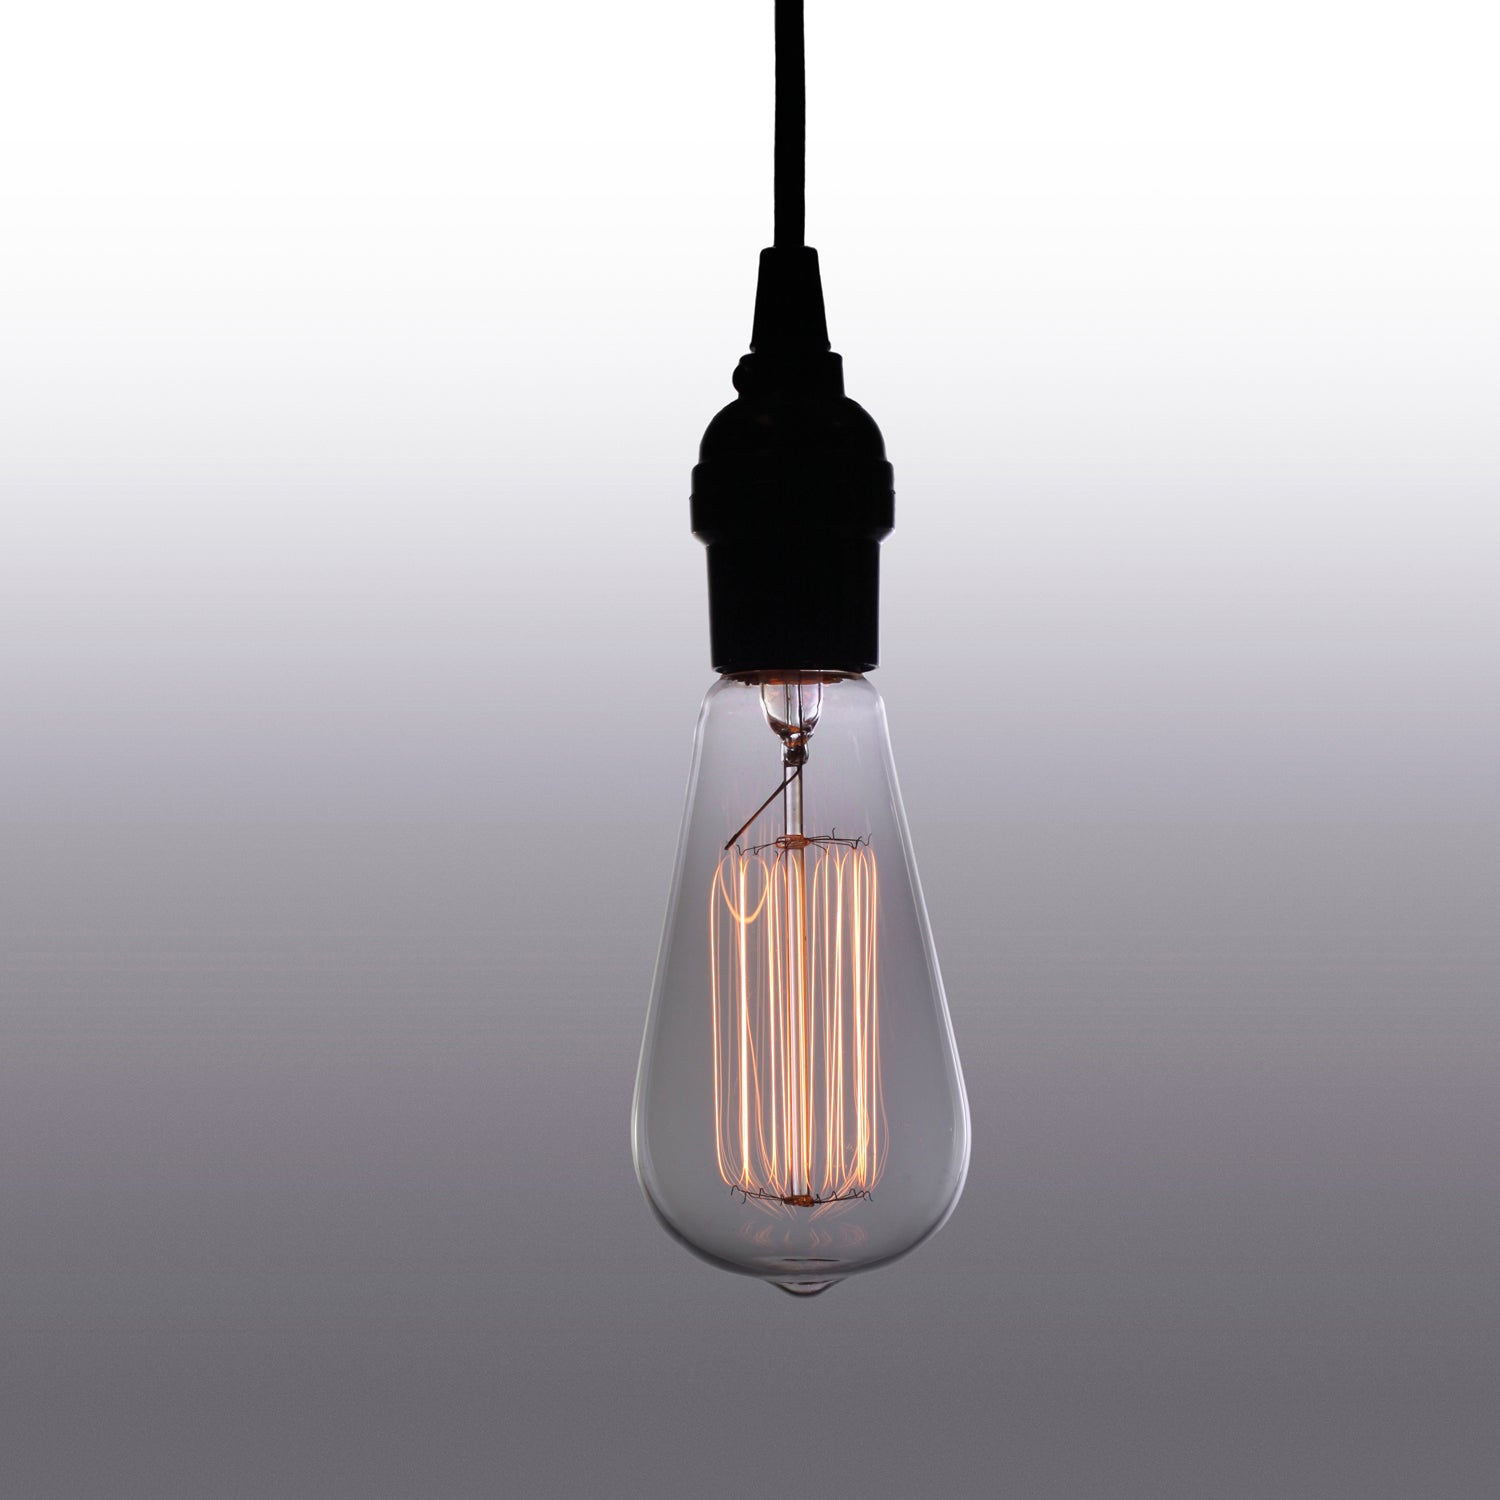 Adjustable Height 1-light Edison Lamp with Bulb